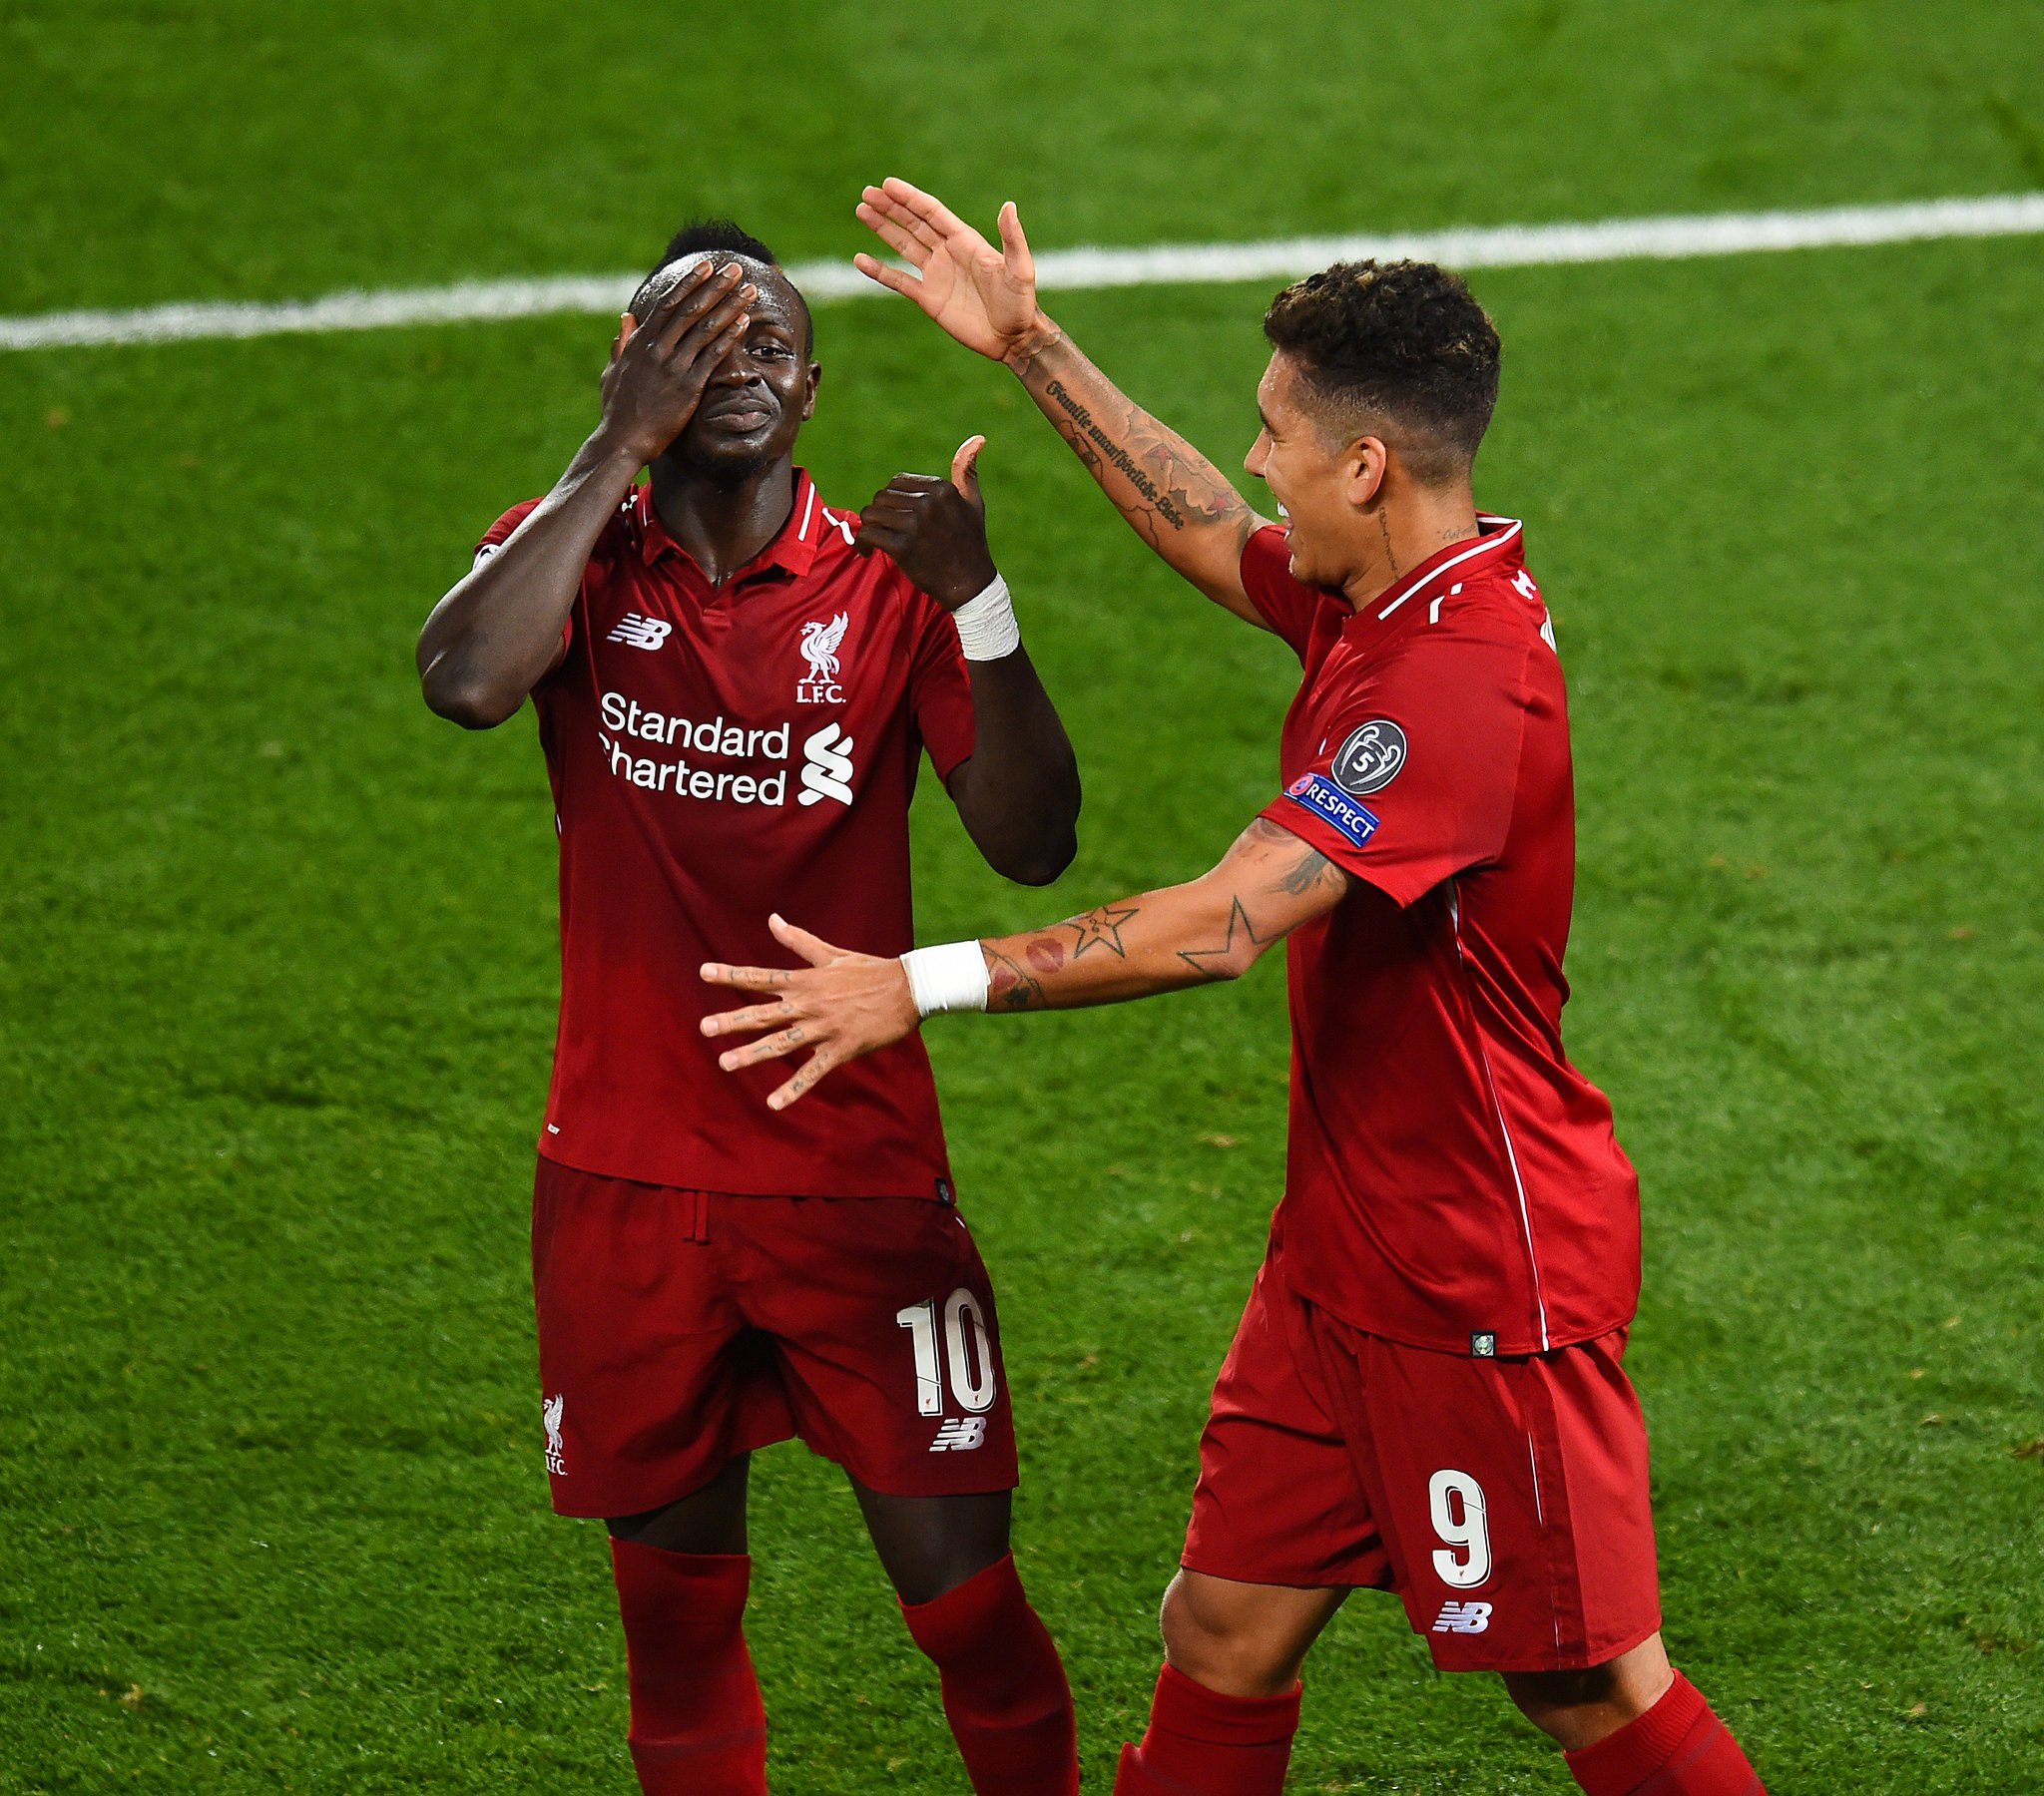 New goal celebrations, Sadio? �� https://t.co/z5UpPsN7MU